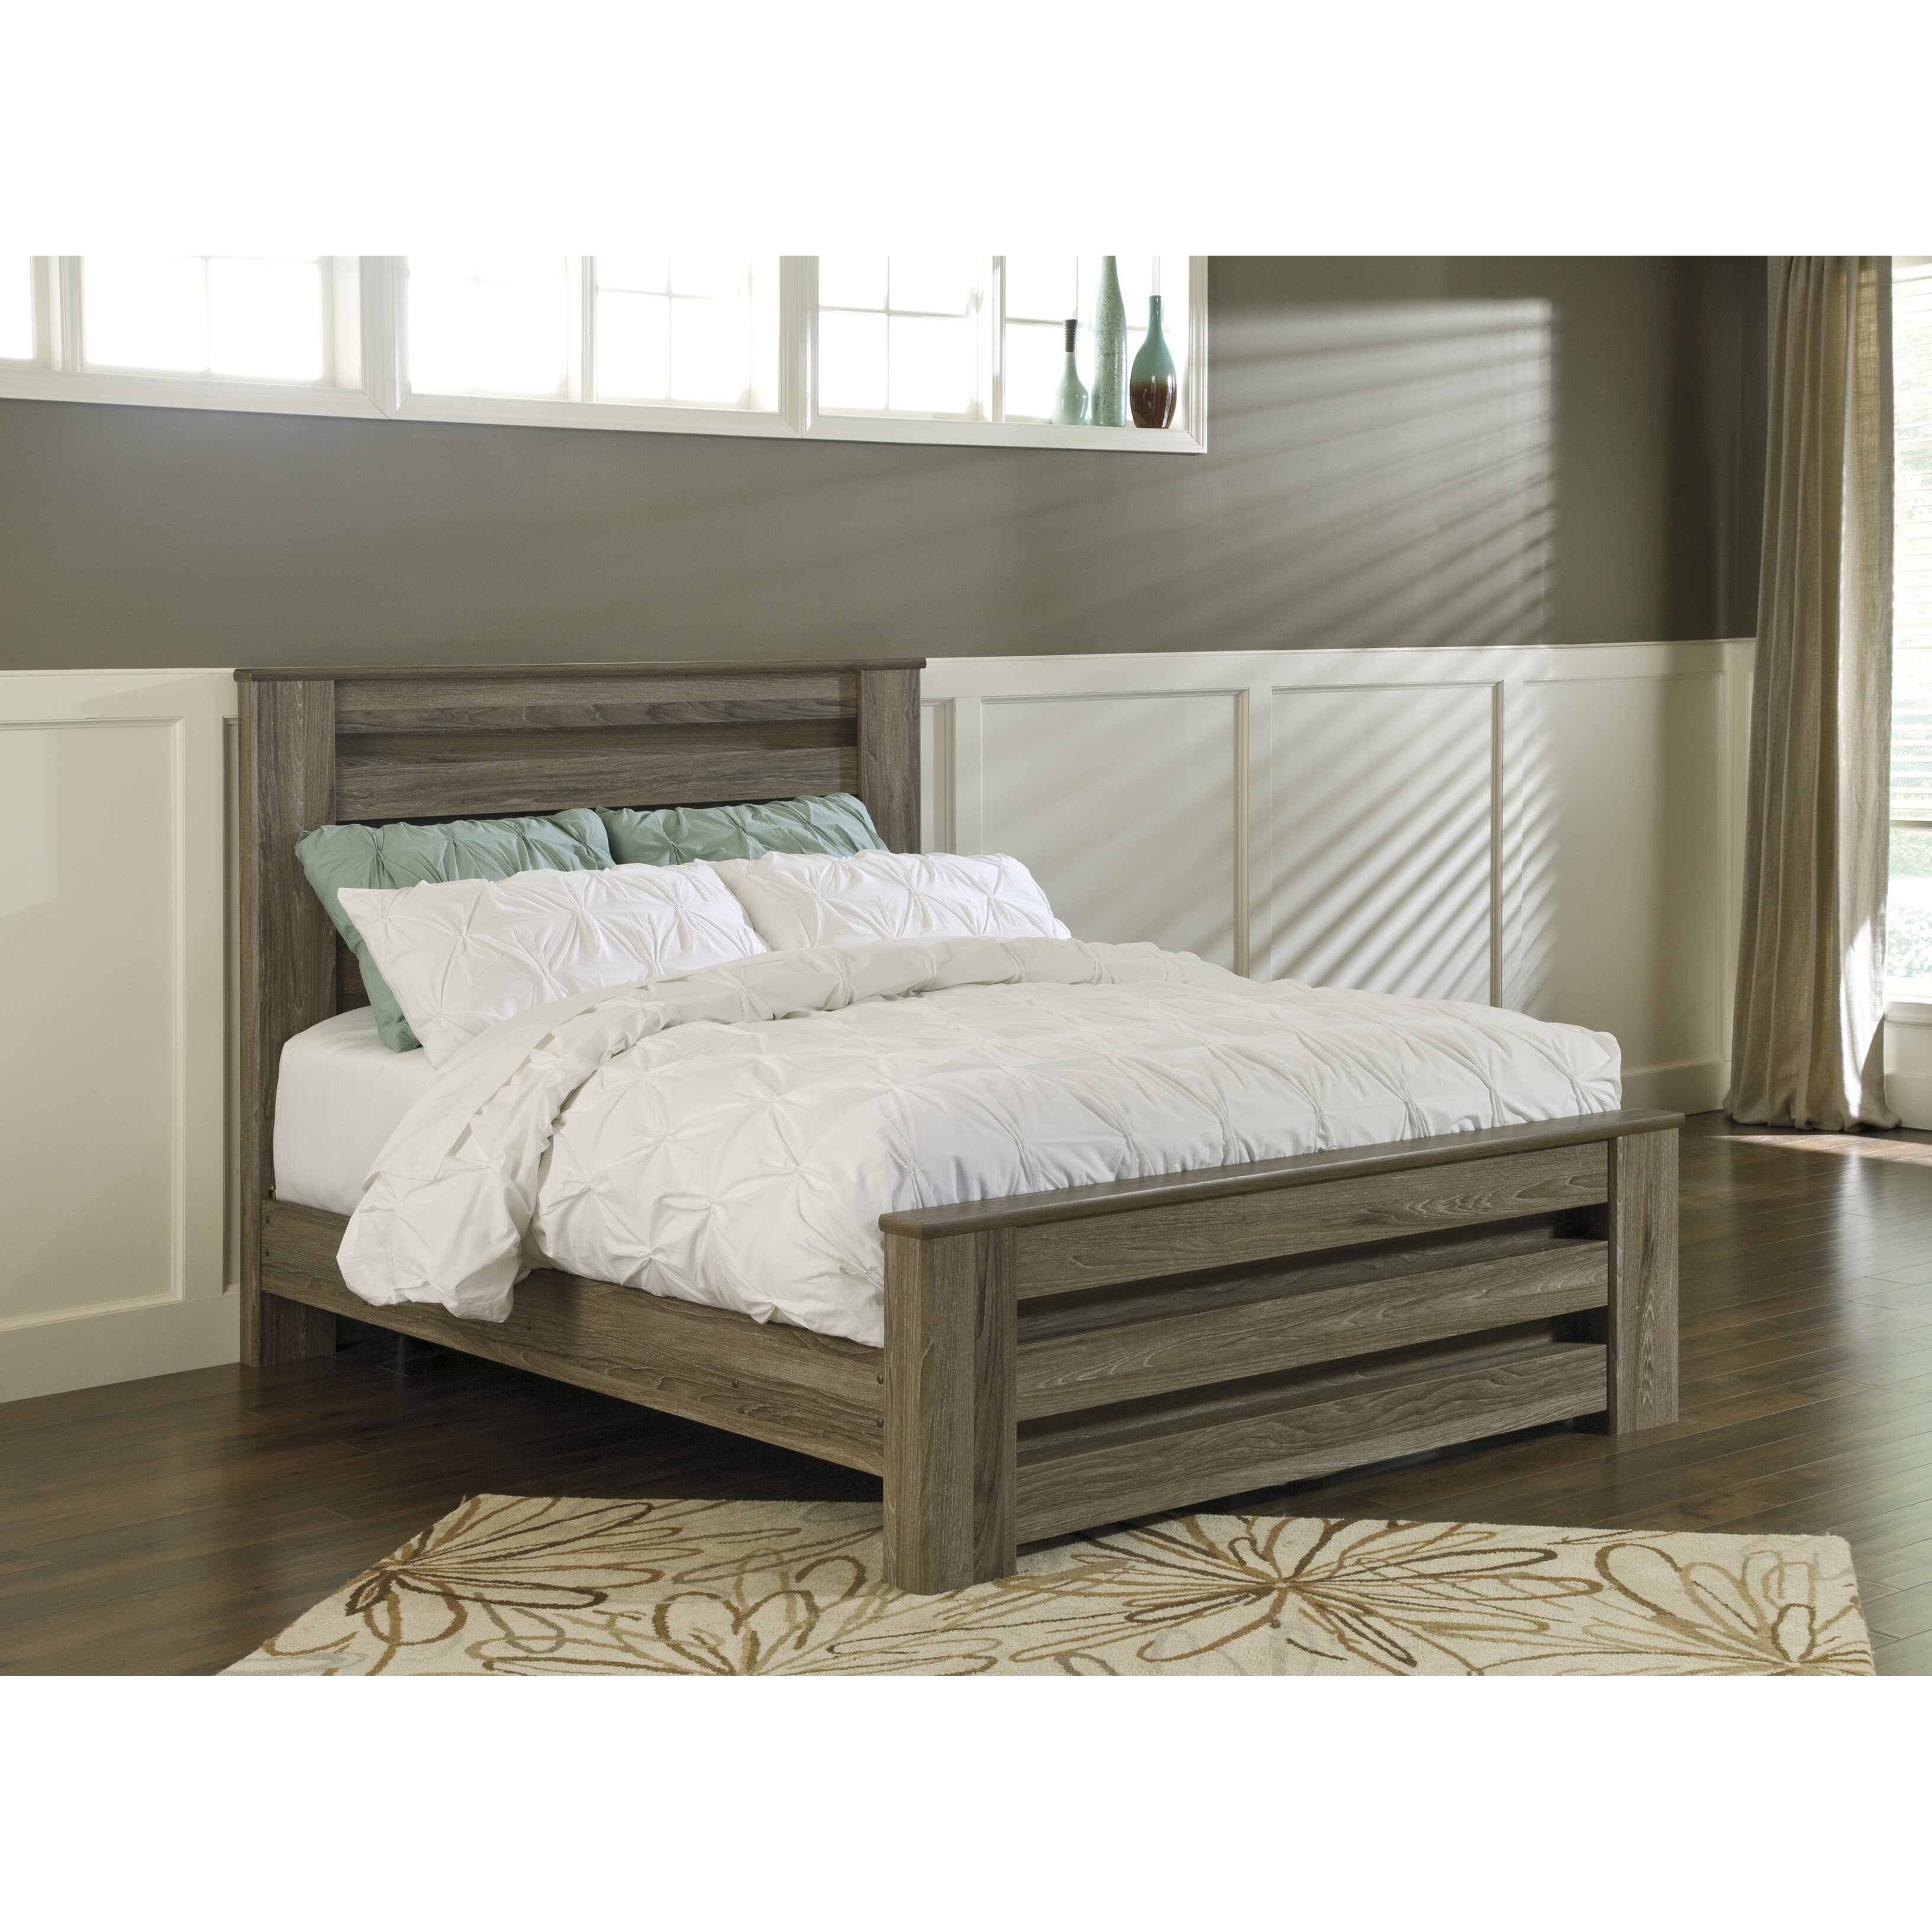 heather upholstered king bed frame in gray simply austin furniture - Bed Frames Austin